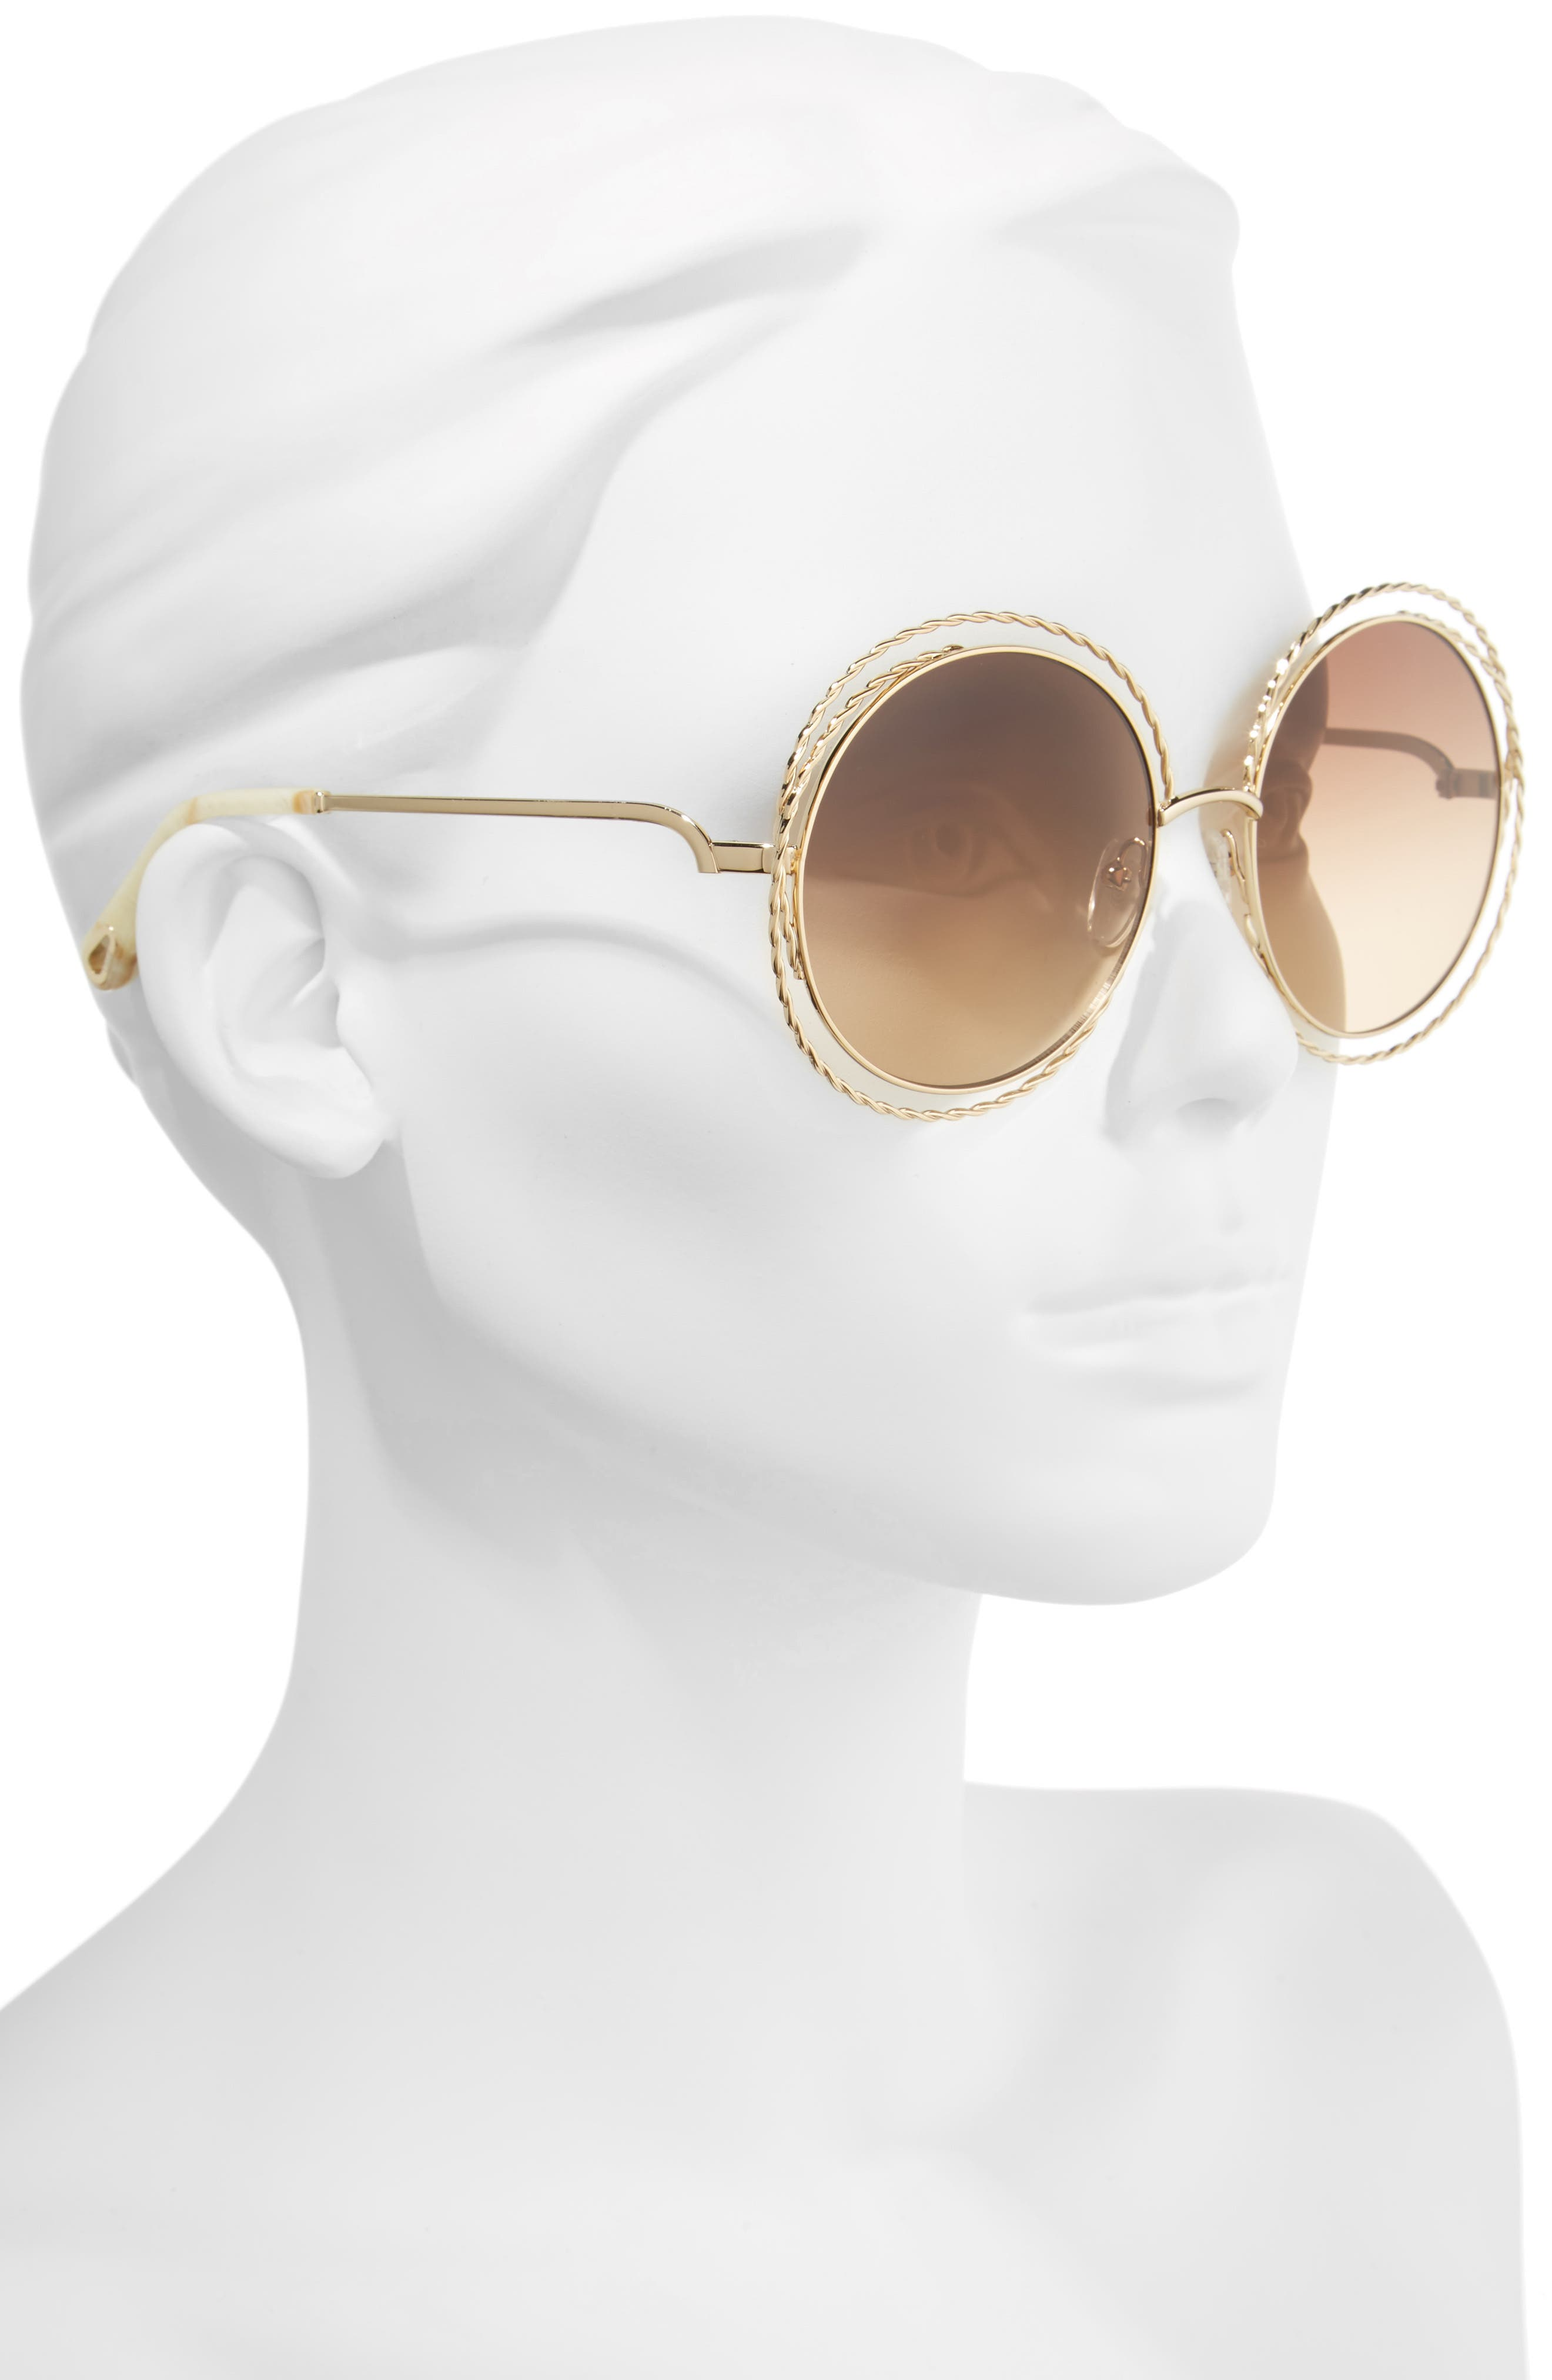 CHLOÉ, Carlina Torsade 58mm Round Sunglasses, Alternate thumbnail 2, color, GOLD/ BROWN